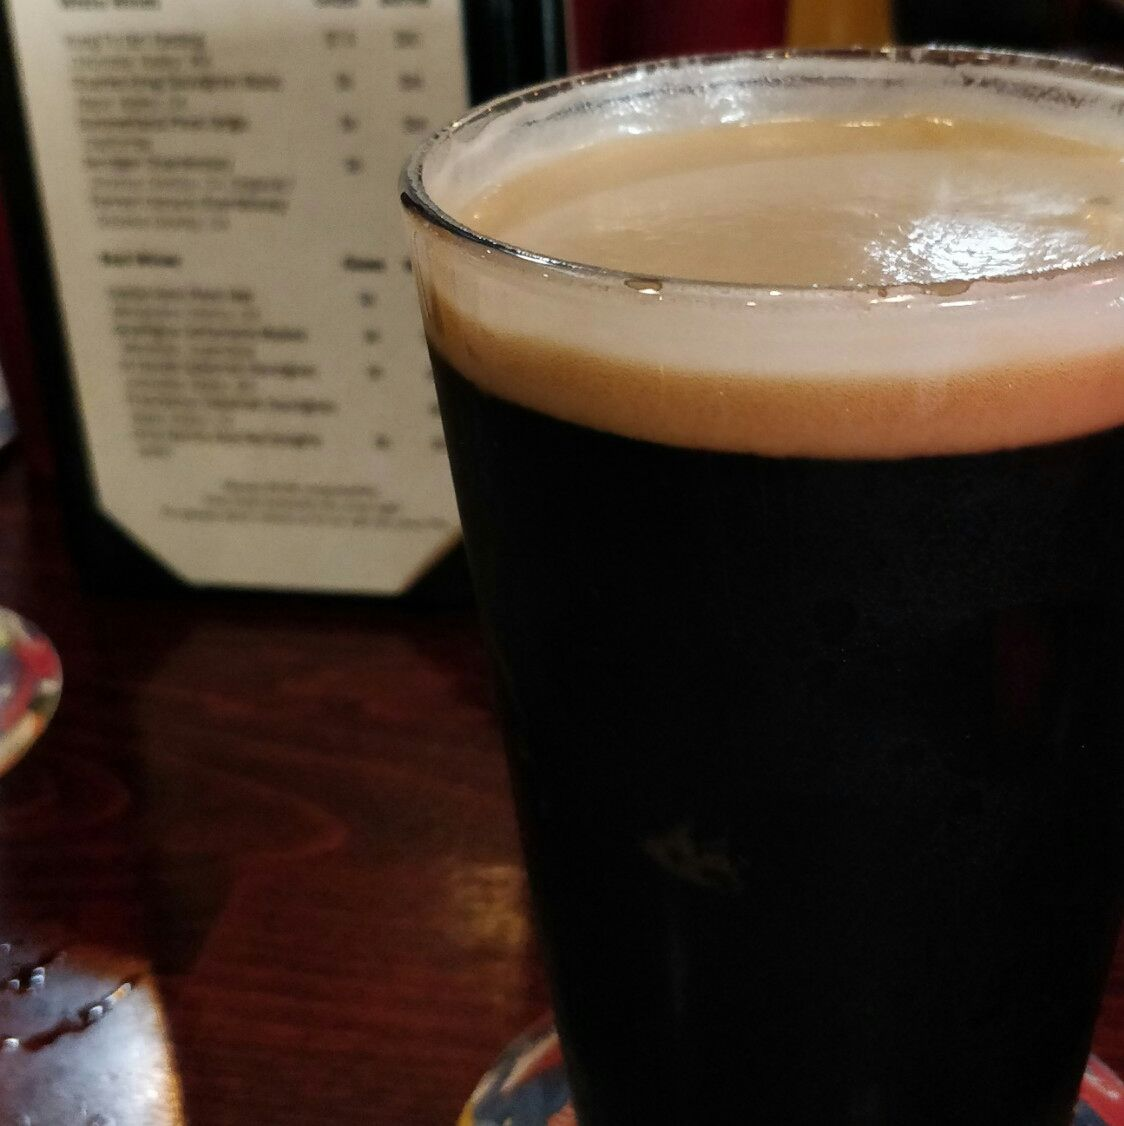 The Patsy by Barley Forge on Nitro